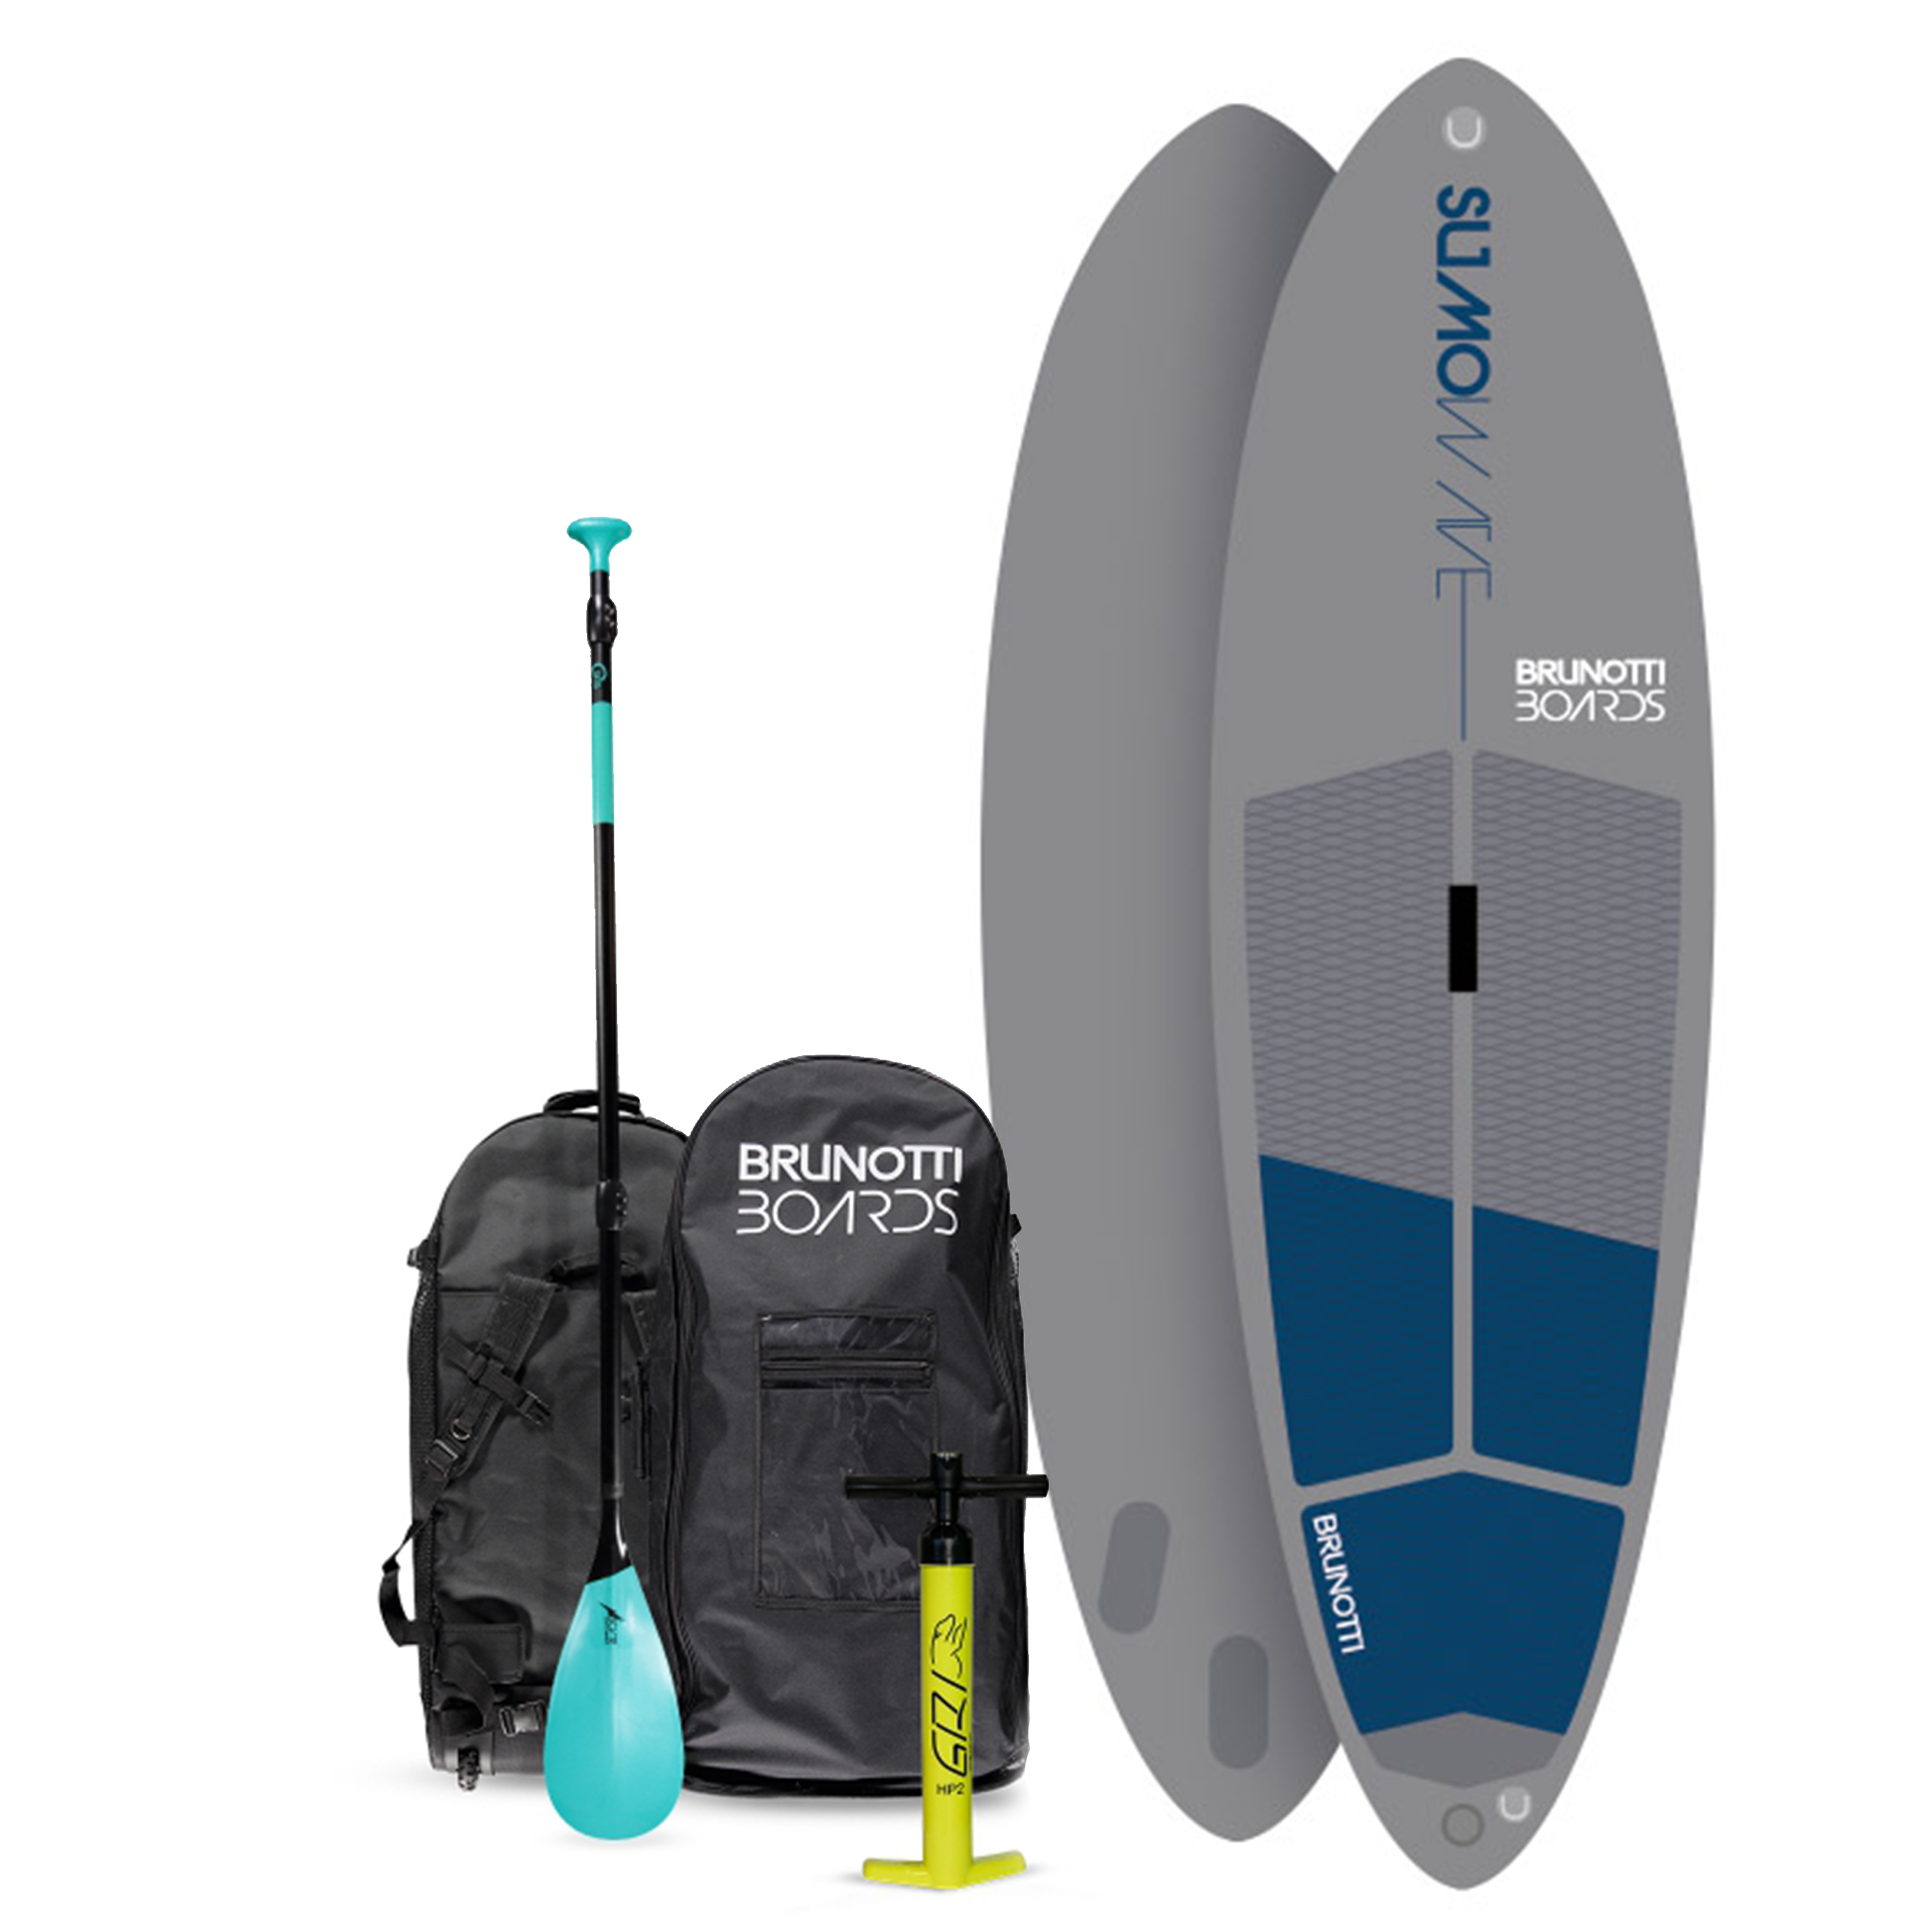 SUMO WAVE INFLATABLE STAND-UP PADDLE BOARD BRUNOTTI 2017